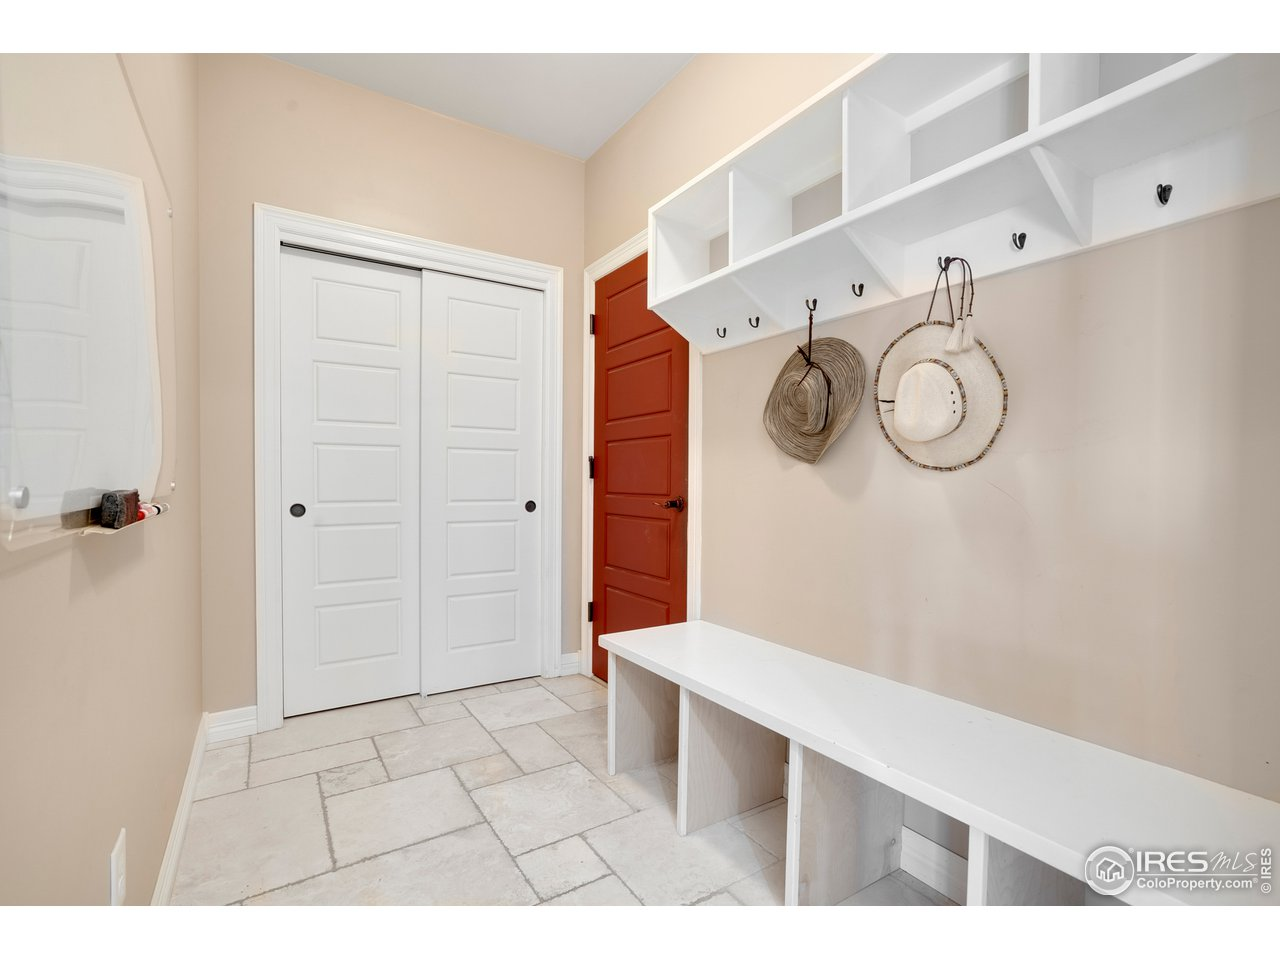 Mudroom with coat closet and service door into garage